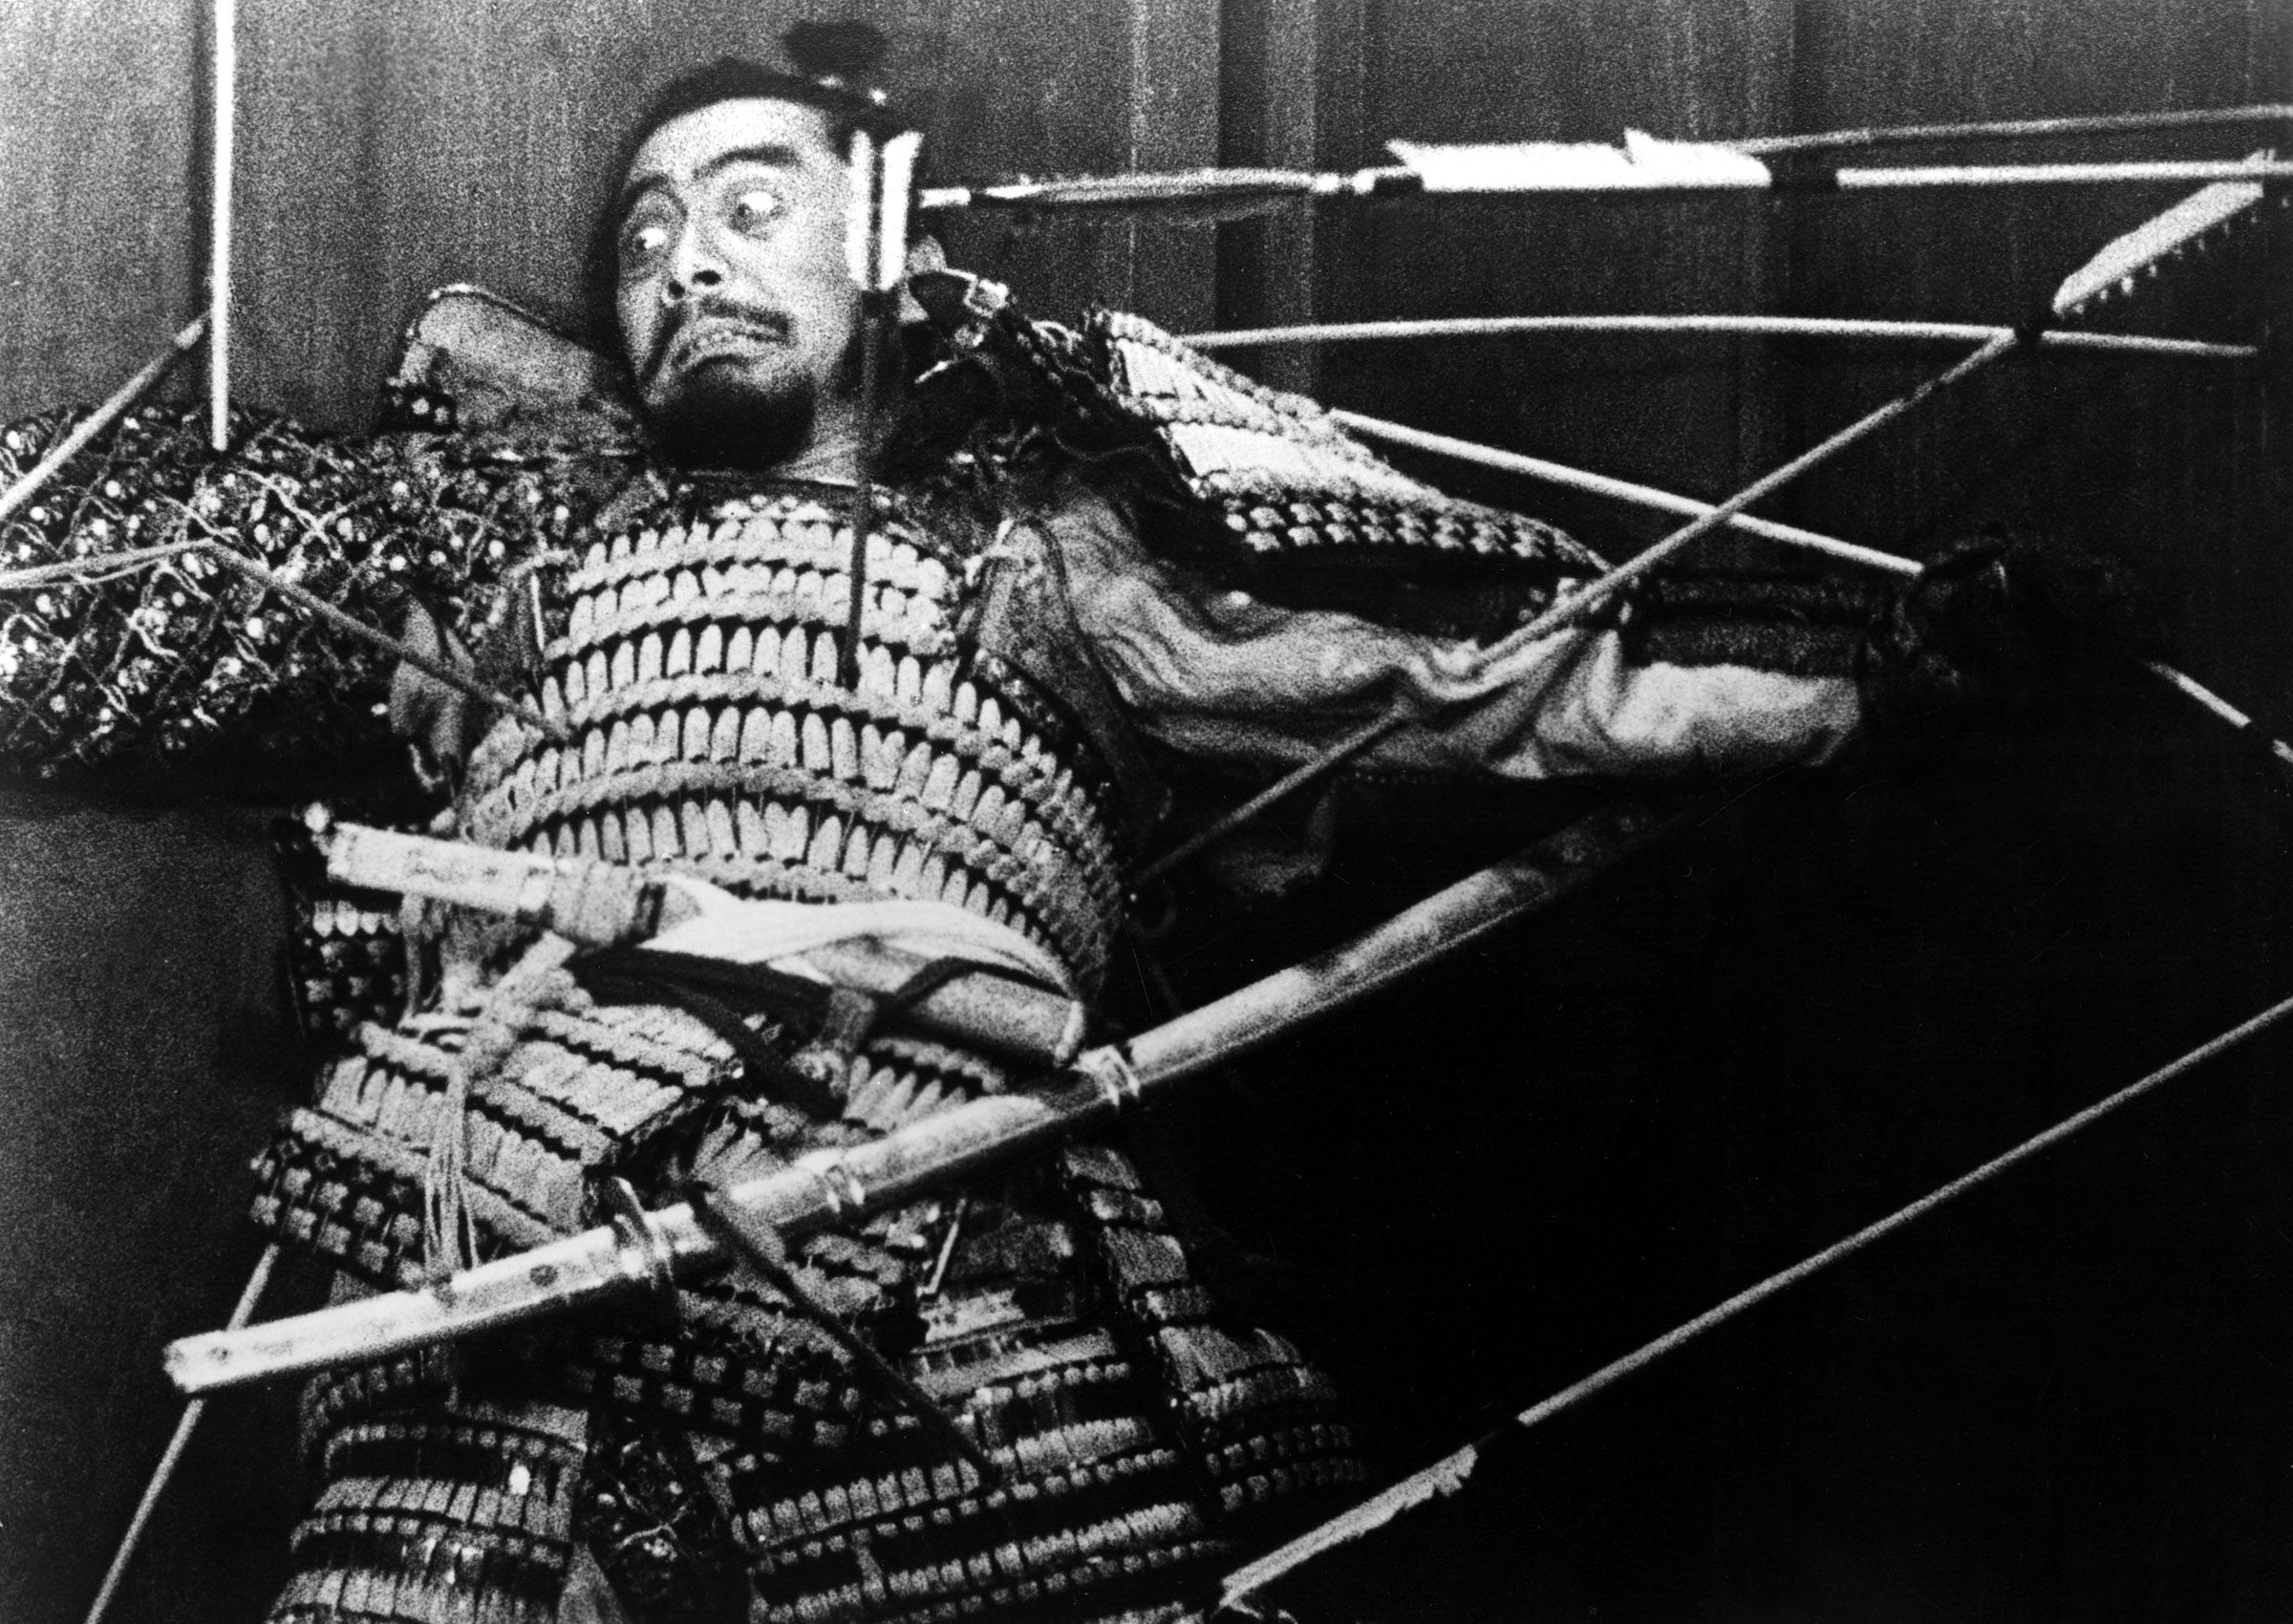 Image from Throne of Blood